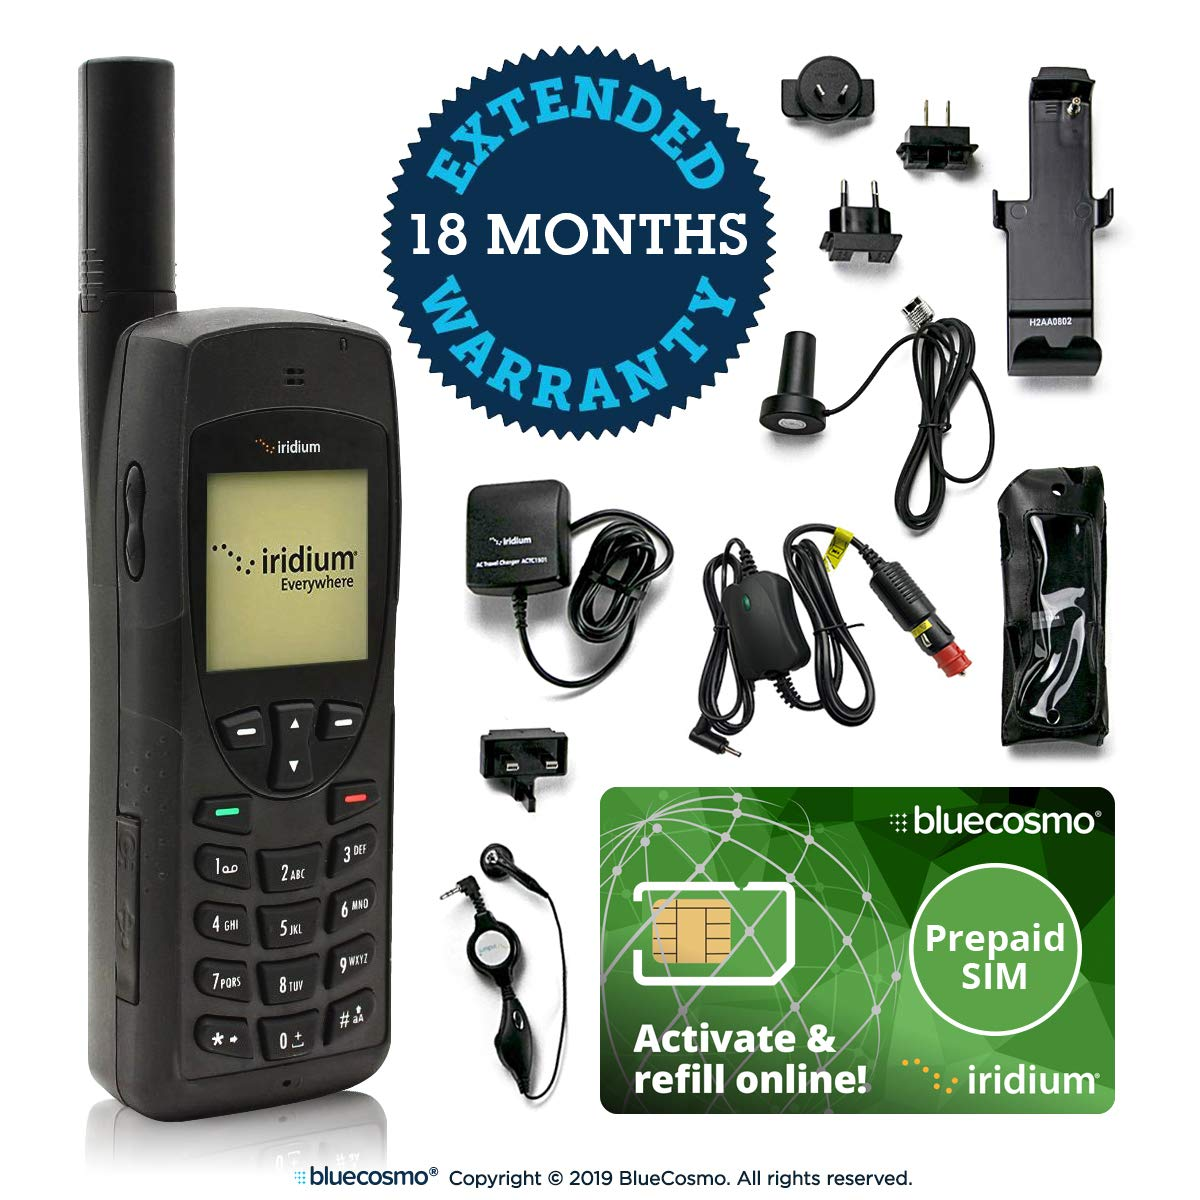 BlueCosmo Iridium Satellite Phone Bundle